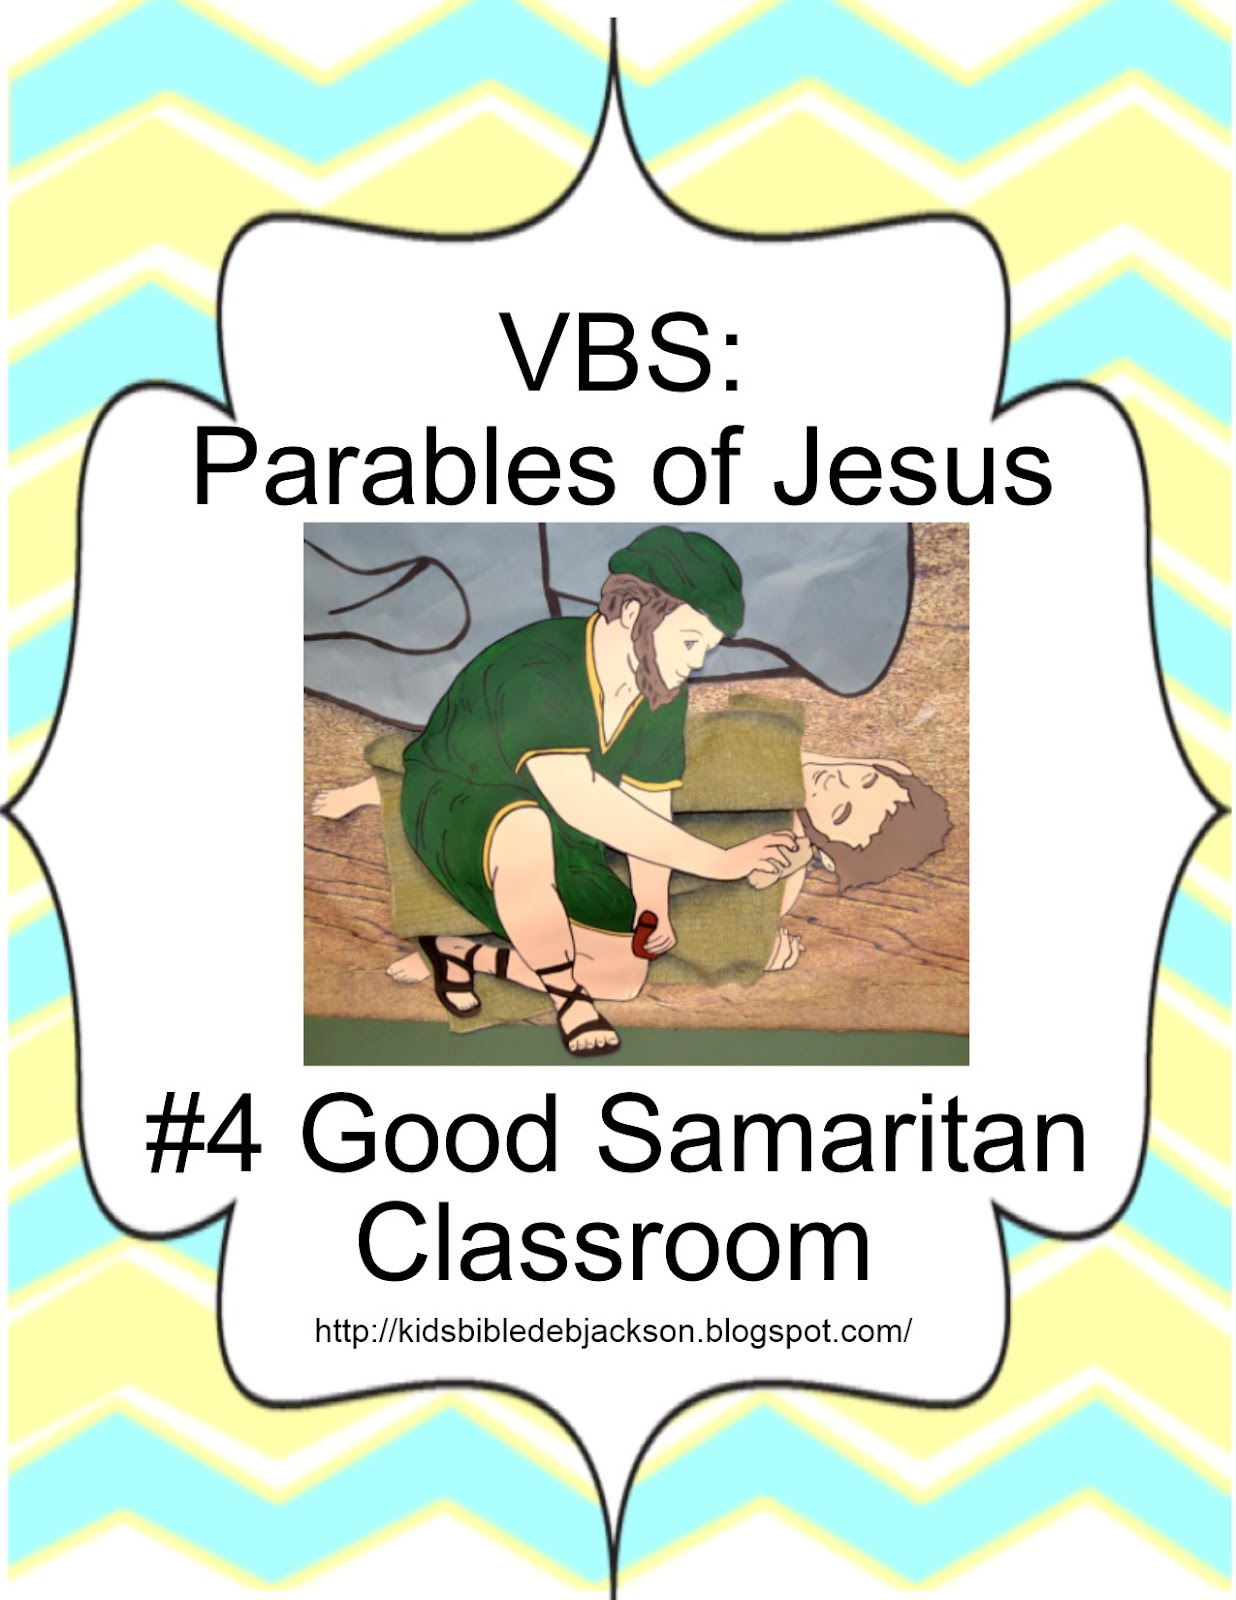 http://kidsbibledebjackson.blogspot.com/2014/06/parables-of-jesus-vbs-day-4-good.html